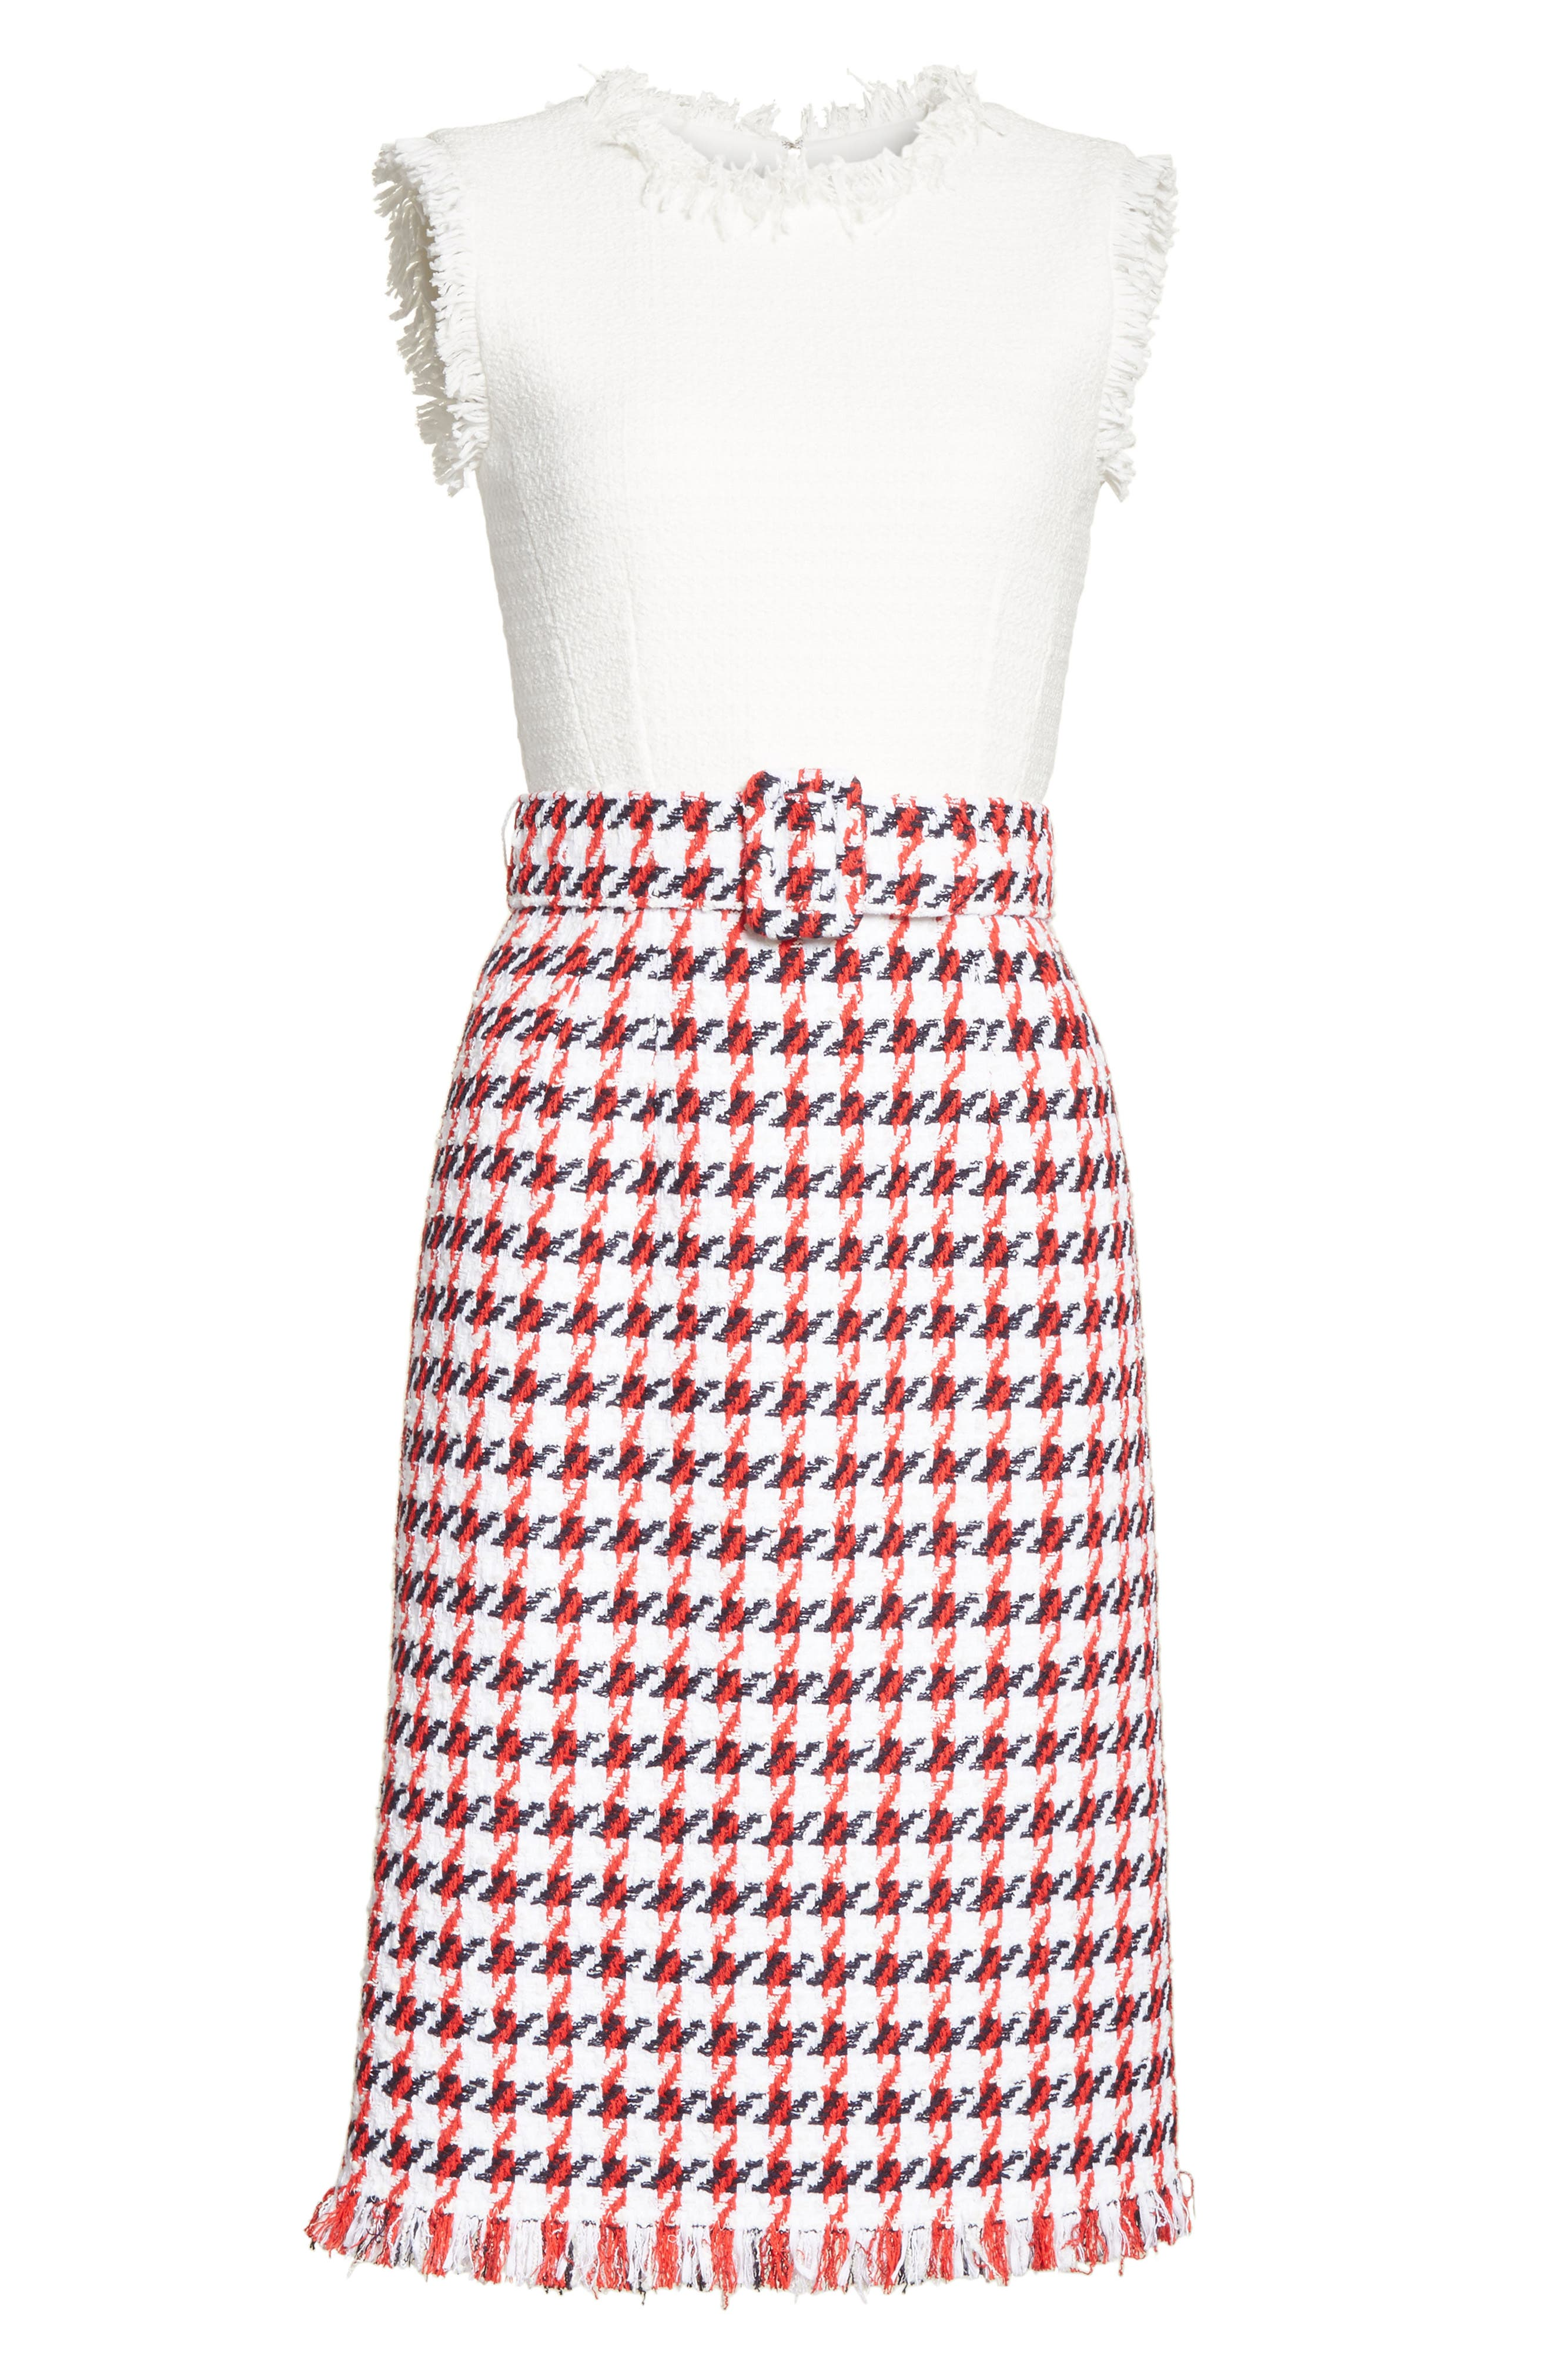 Bicolor Houndstooth Tweed Dress,                             Alternate thumbnail 6, color,